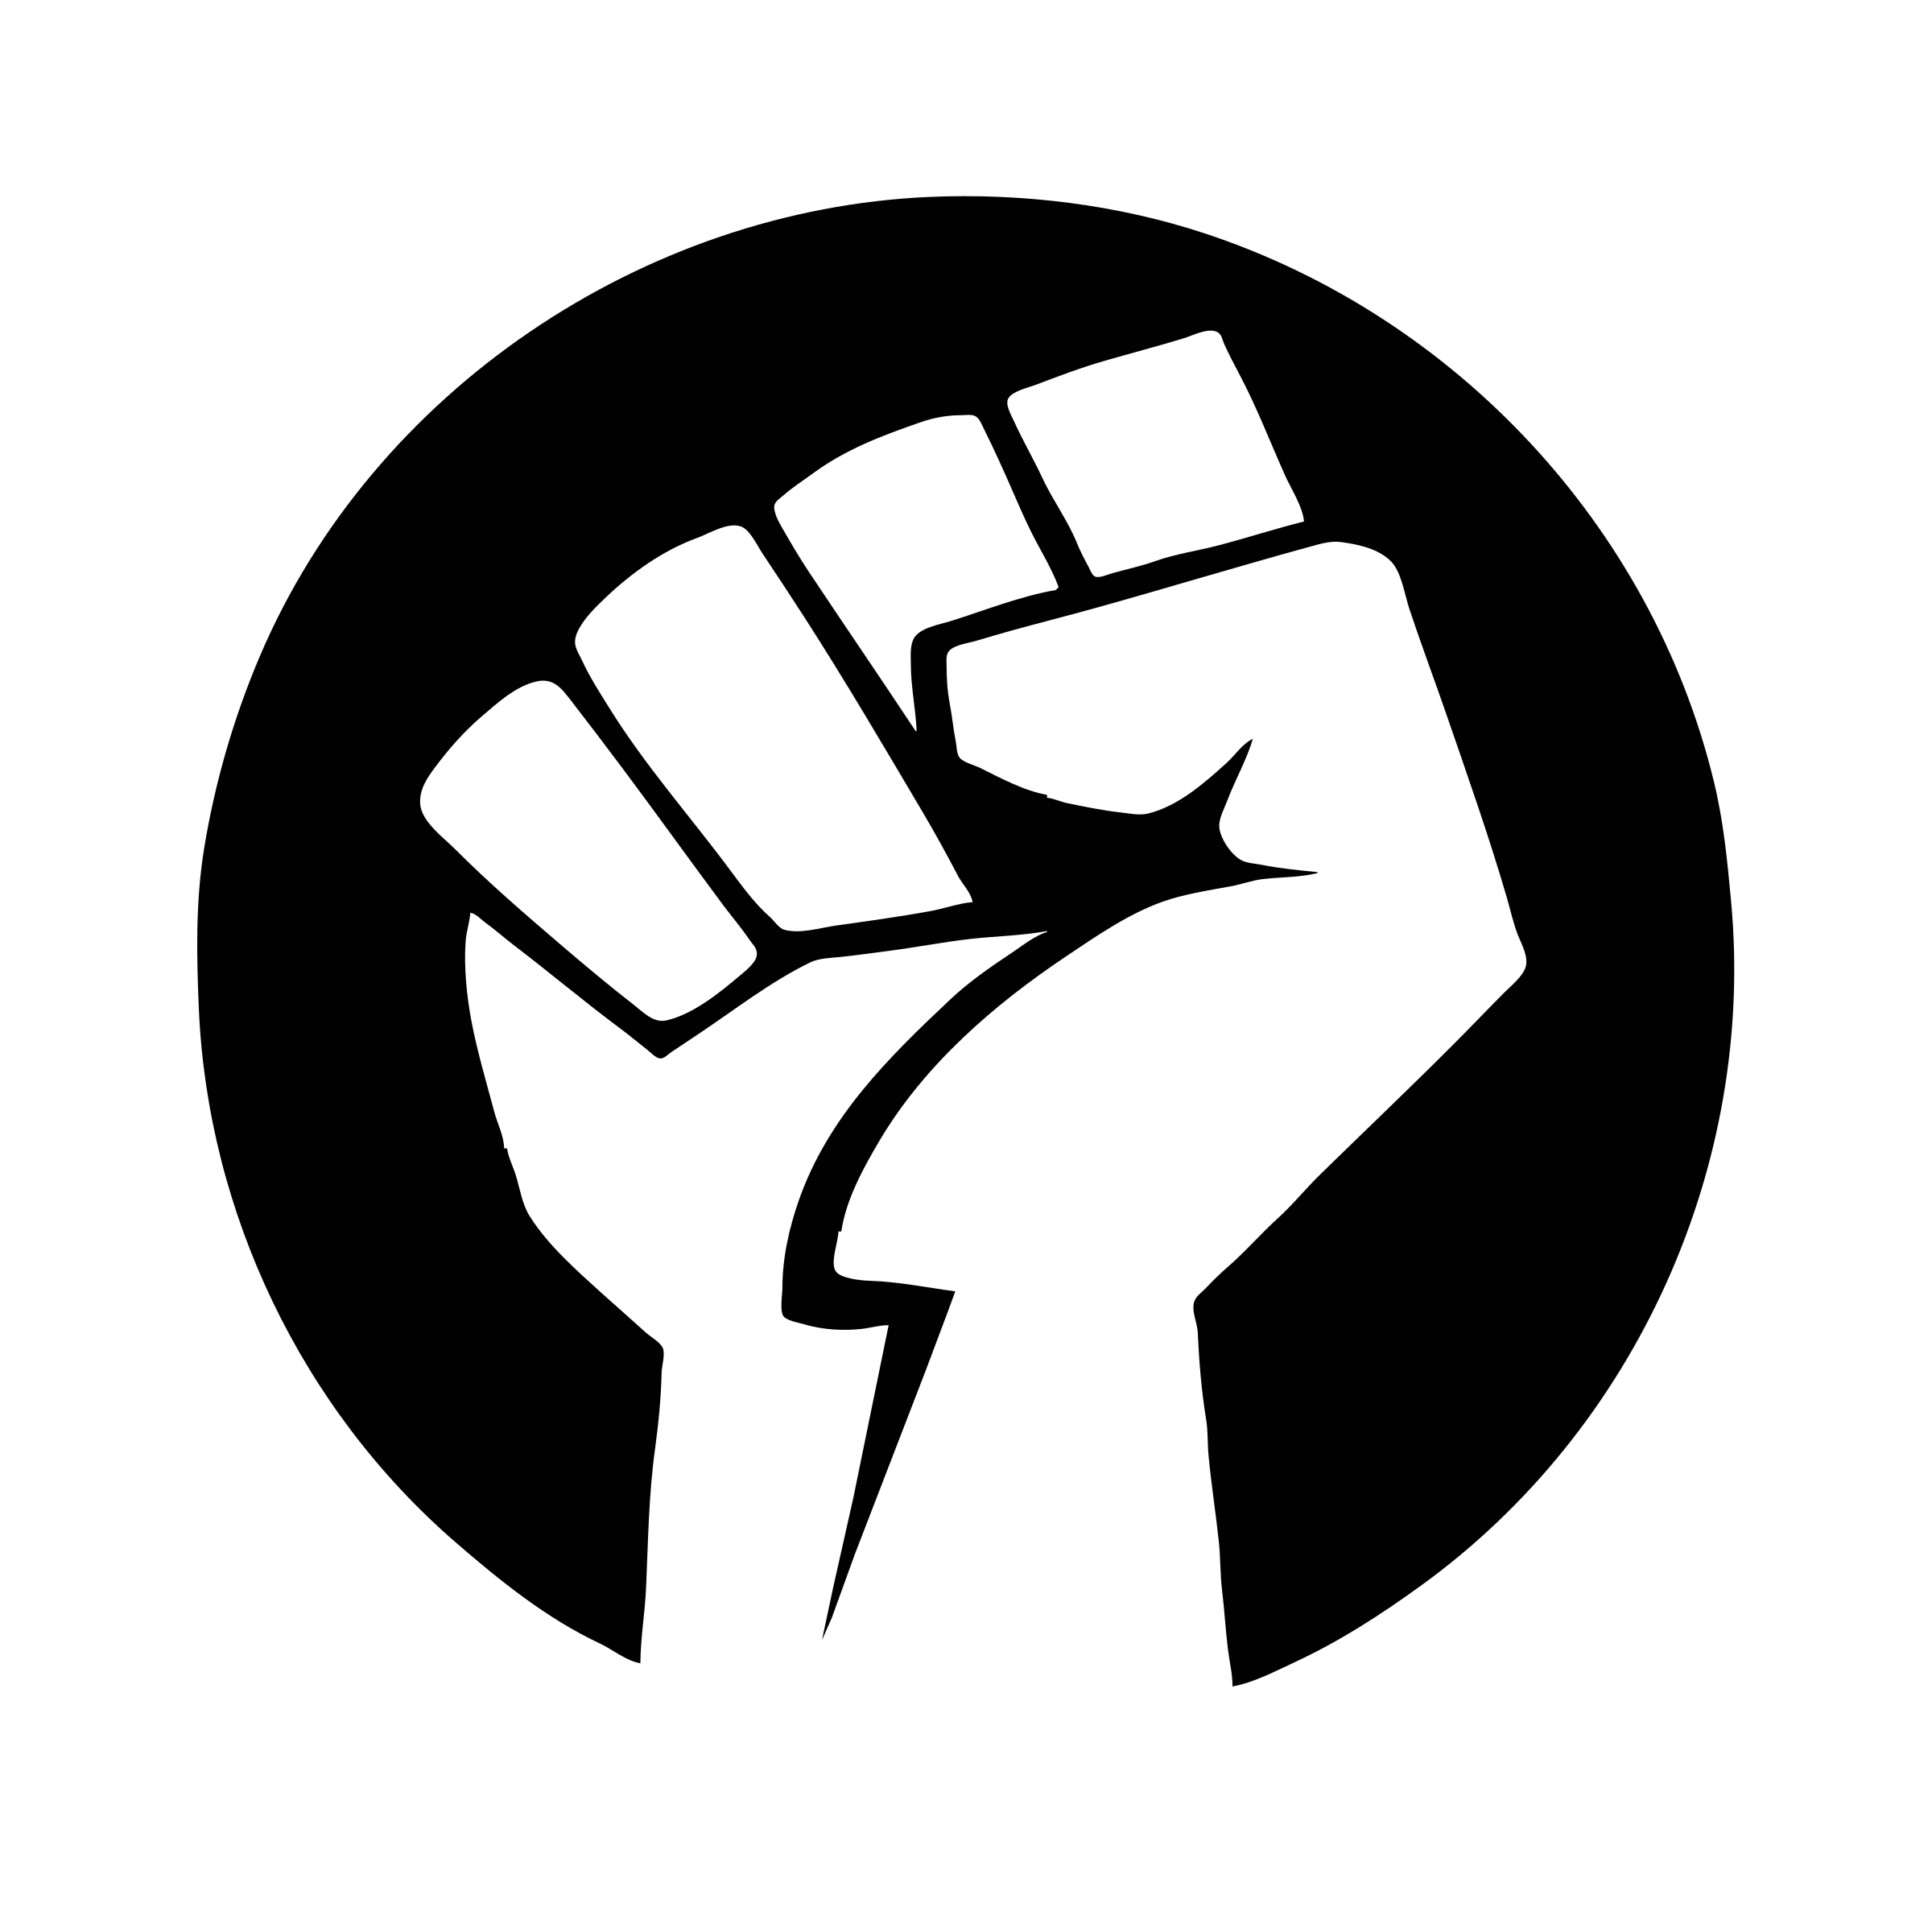 Power fist bw png. Positive clipart black and white